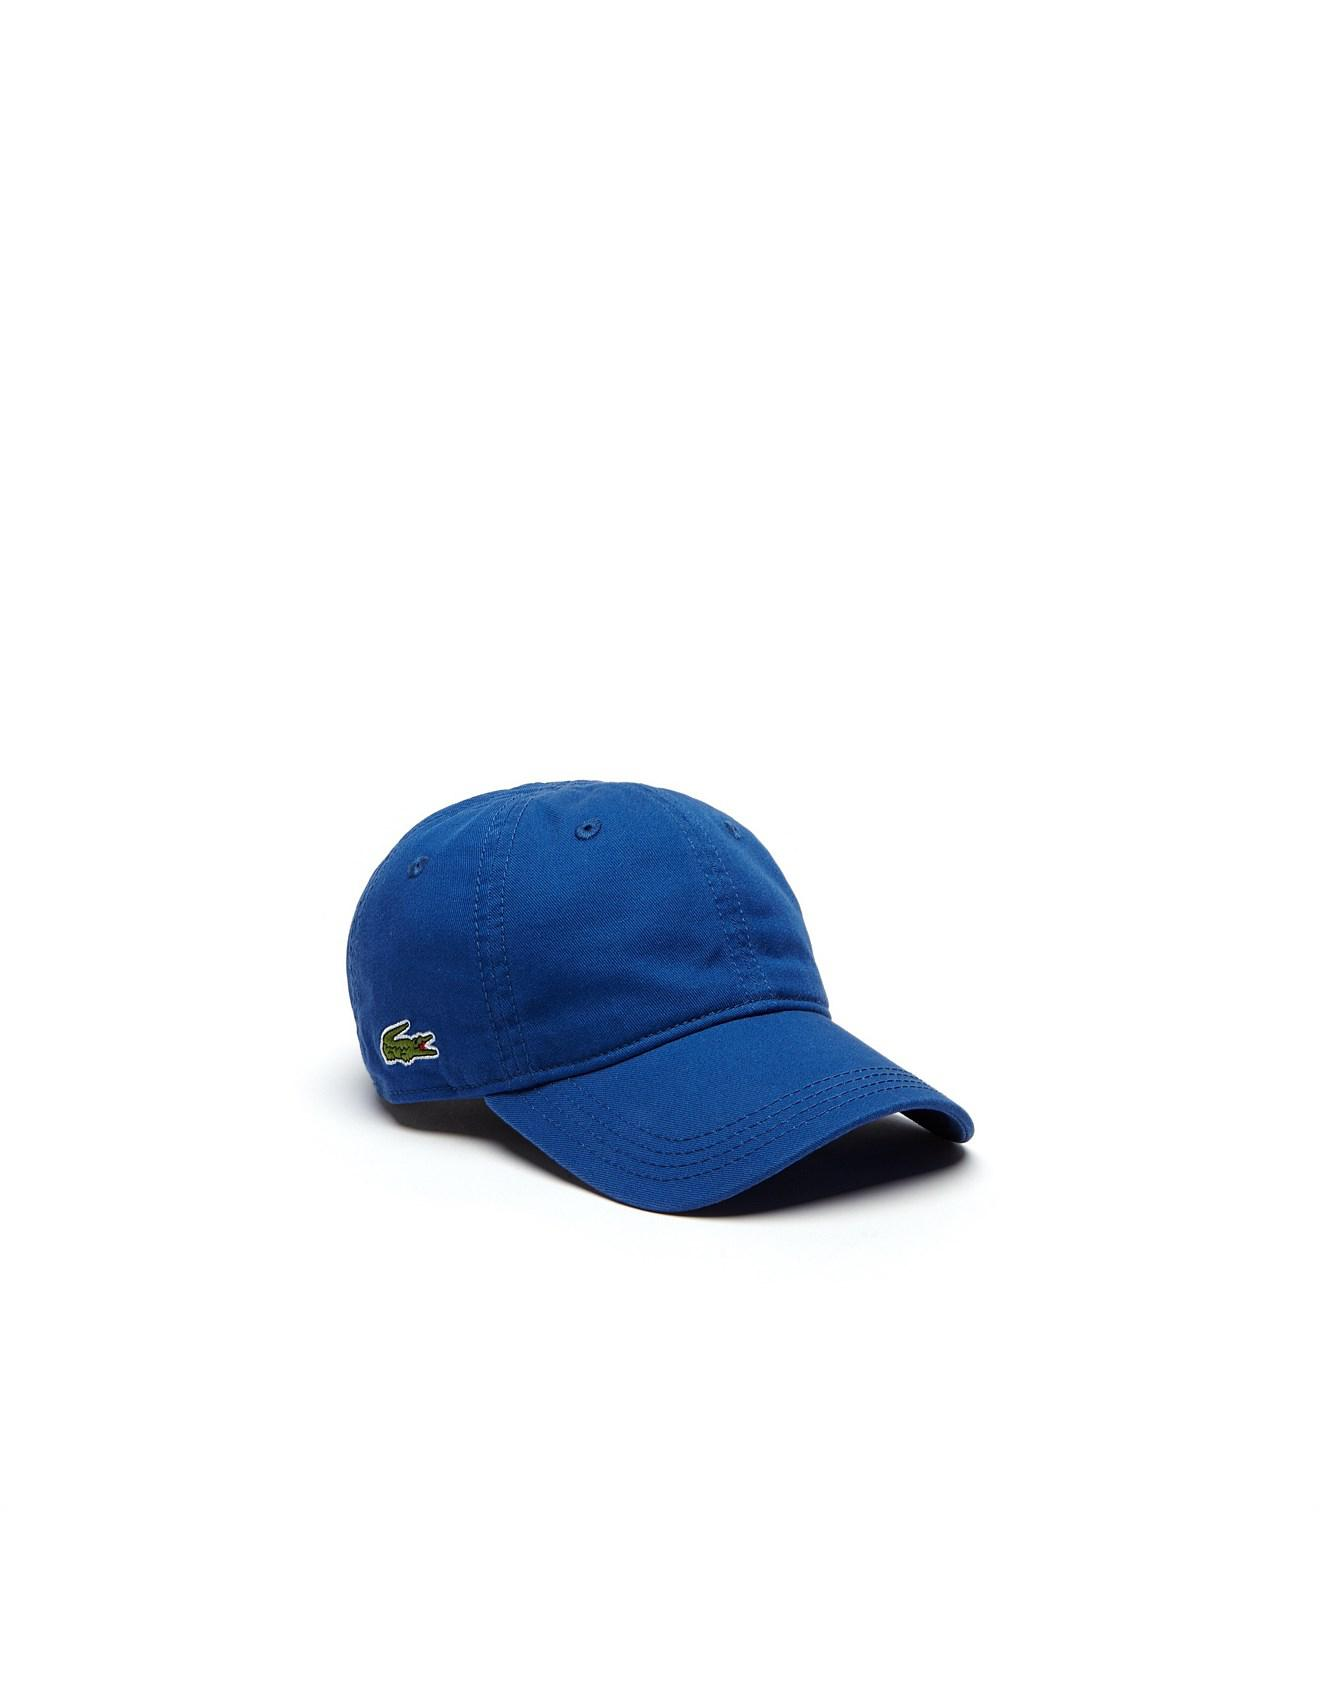 ecbb3fc94 Lacoste Basic Side Croc Cap in Blue for Men - Lyst